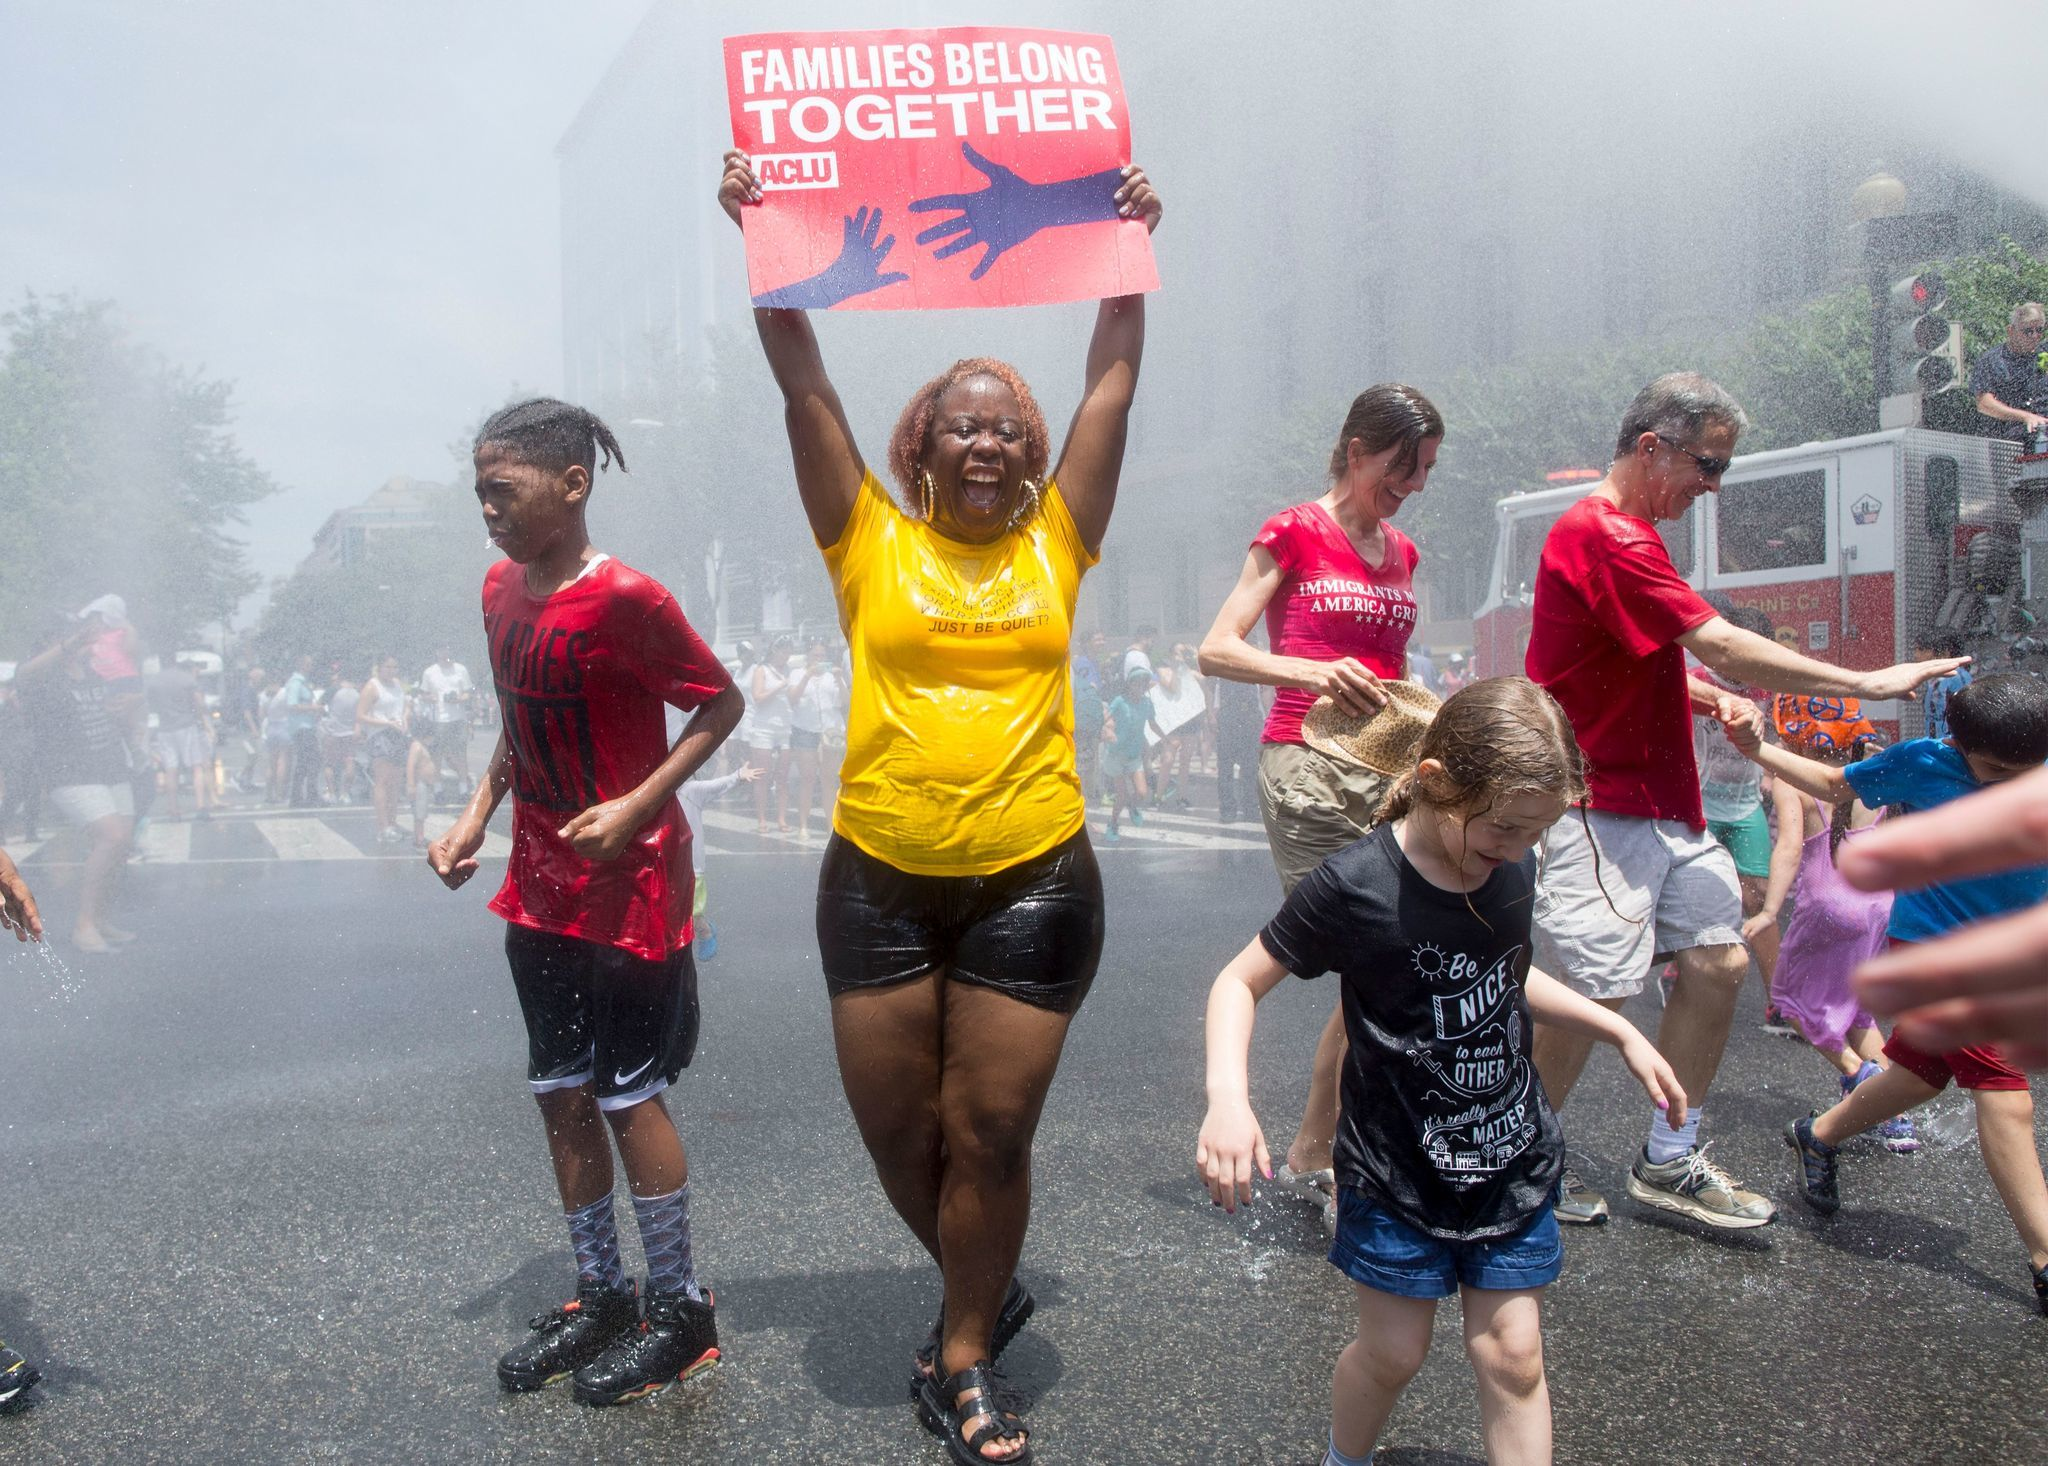 WASHINGTON, D.C.: A woman holds a sign while joining others underneath water being sprayed by a firetruck to cool off people attending a Families Belong Together rally. Michael Reynolds / EPA / Shutterstock